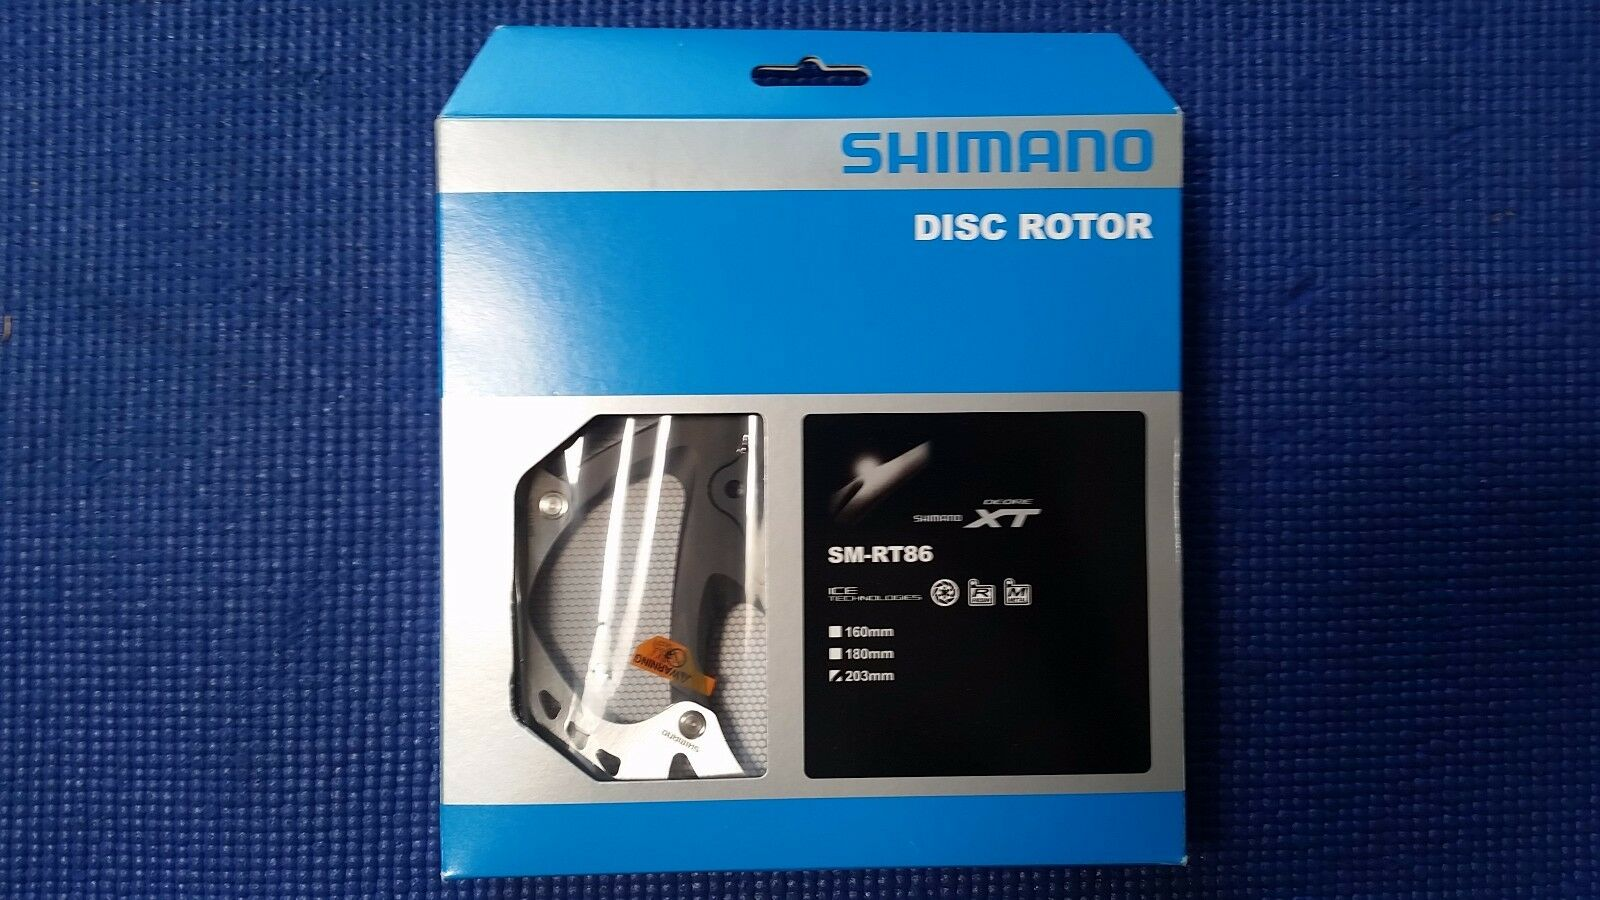 Shimano XT SM-RT86S  IceTech 6 Bolt Disc Brake redor 160mm  6   in stadium promotions